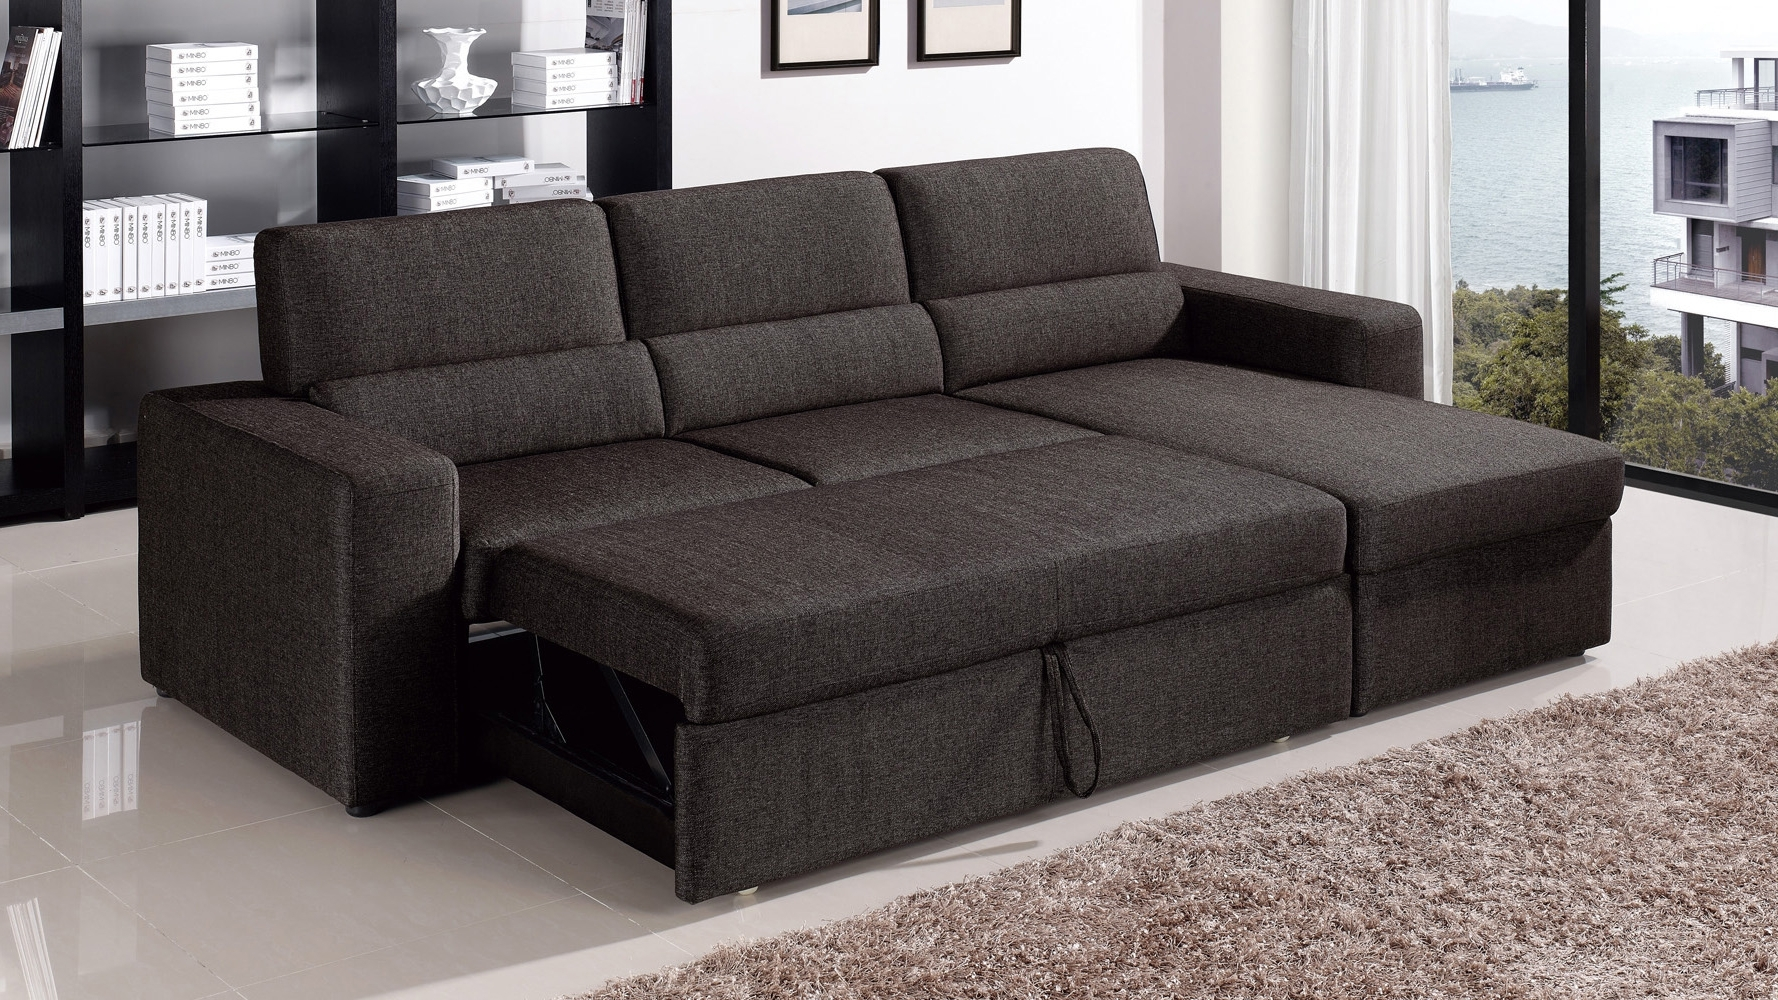 Chaise Sleepers In Current Black/brown Clubber Sleeper Sectional Sofa (View 5 of 15)